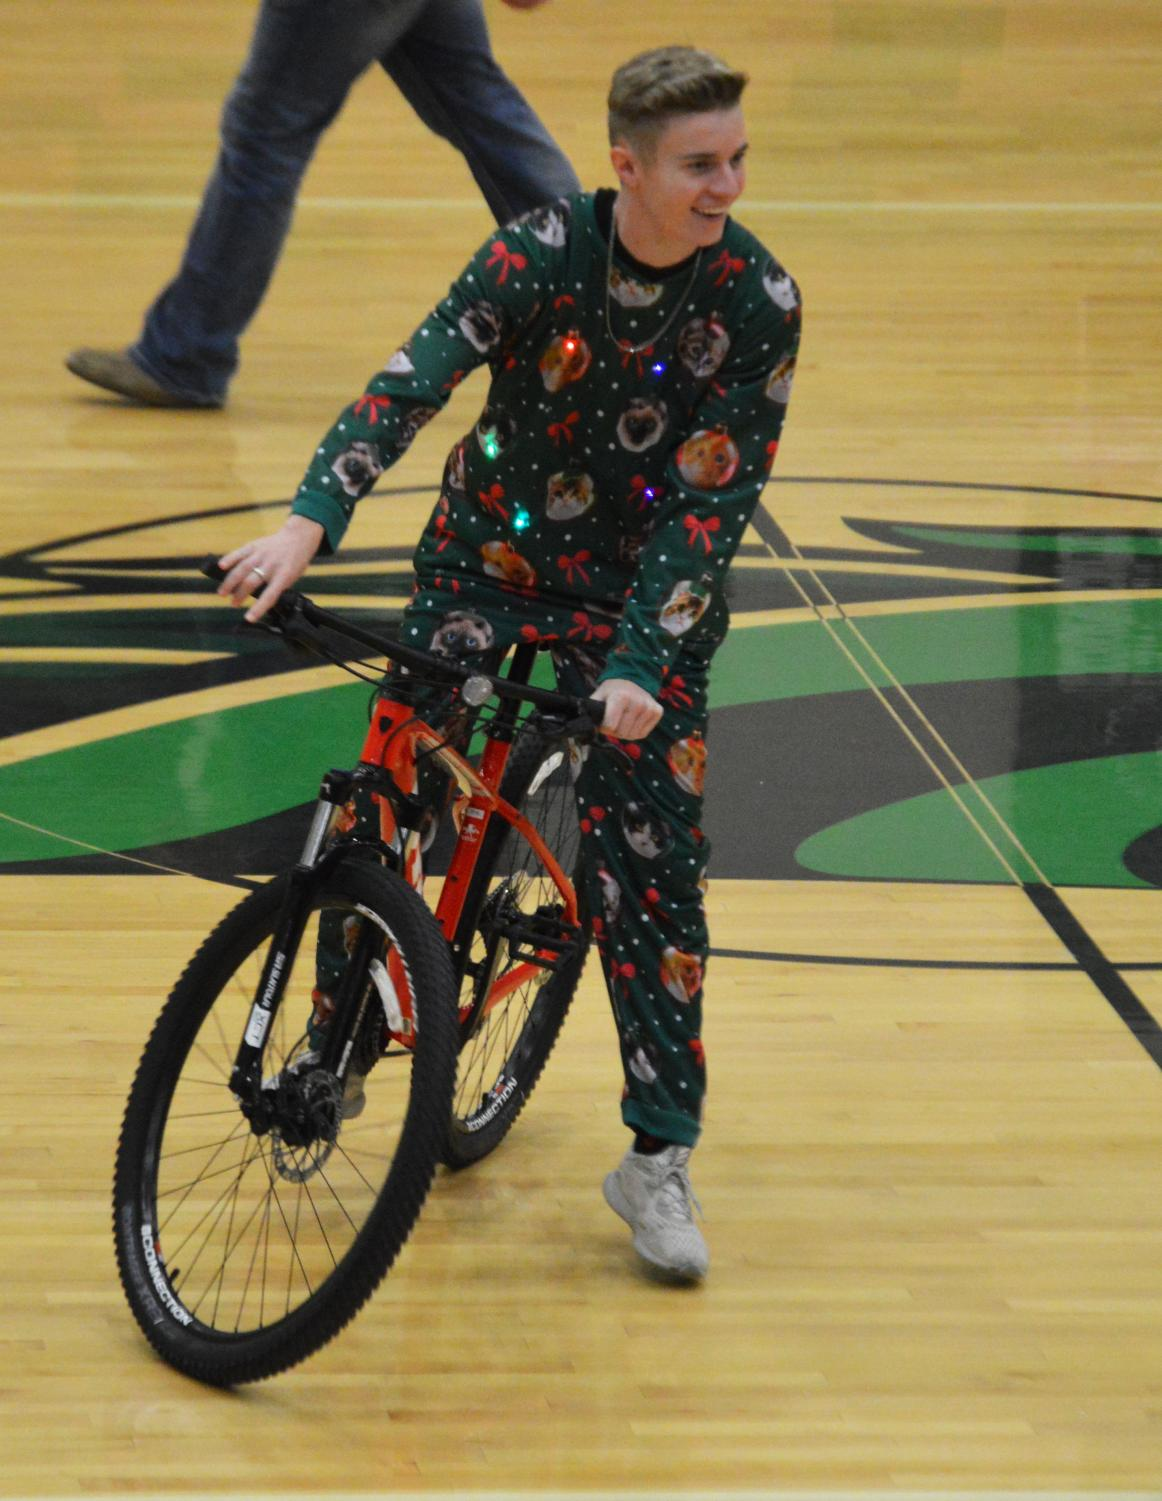 Nephi Bigler (12) showing off a bike that was auctioned off.